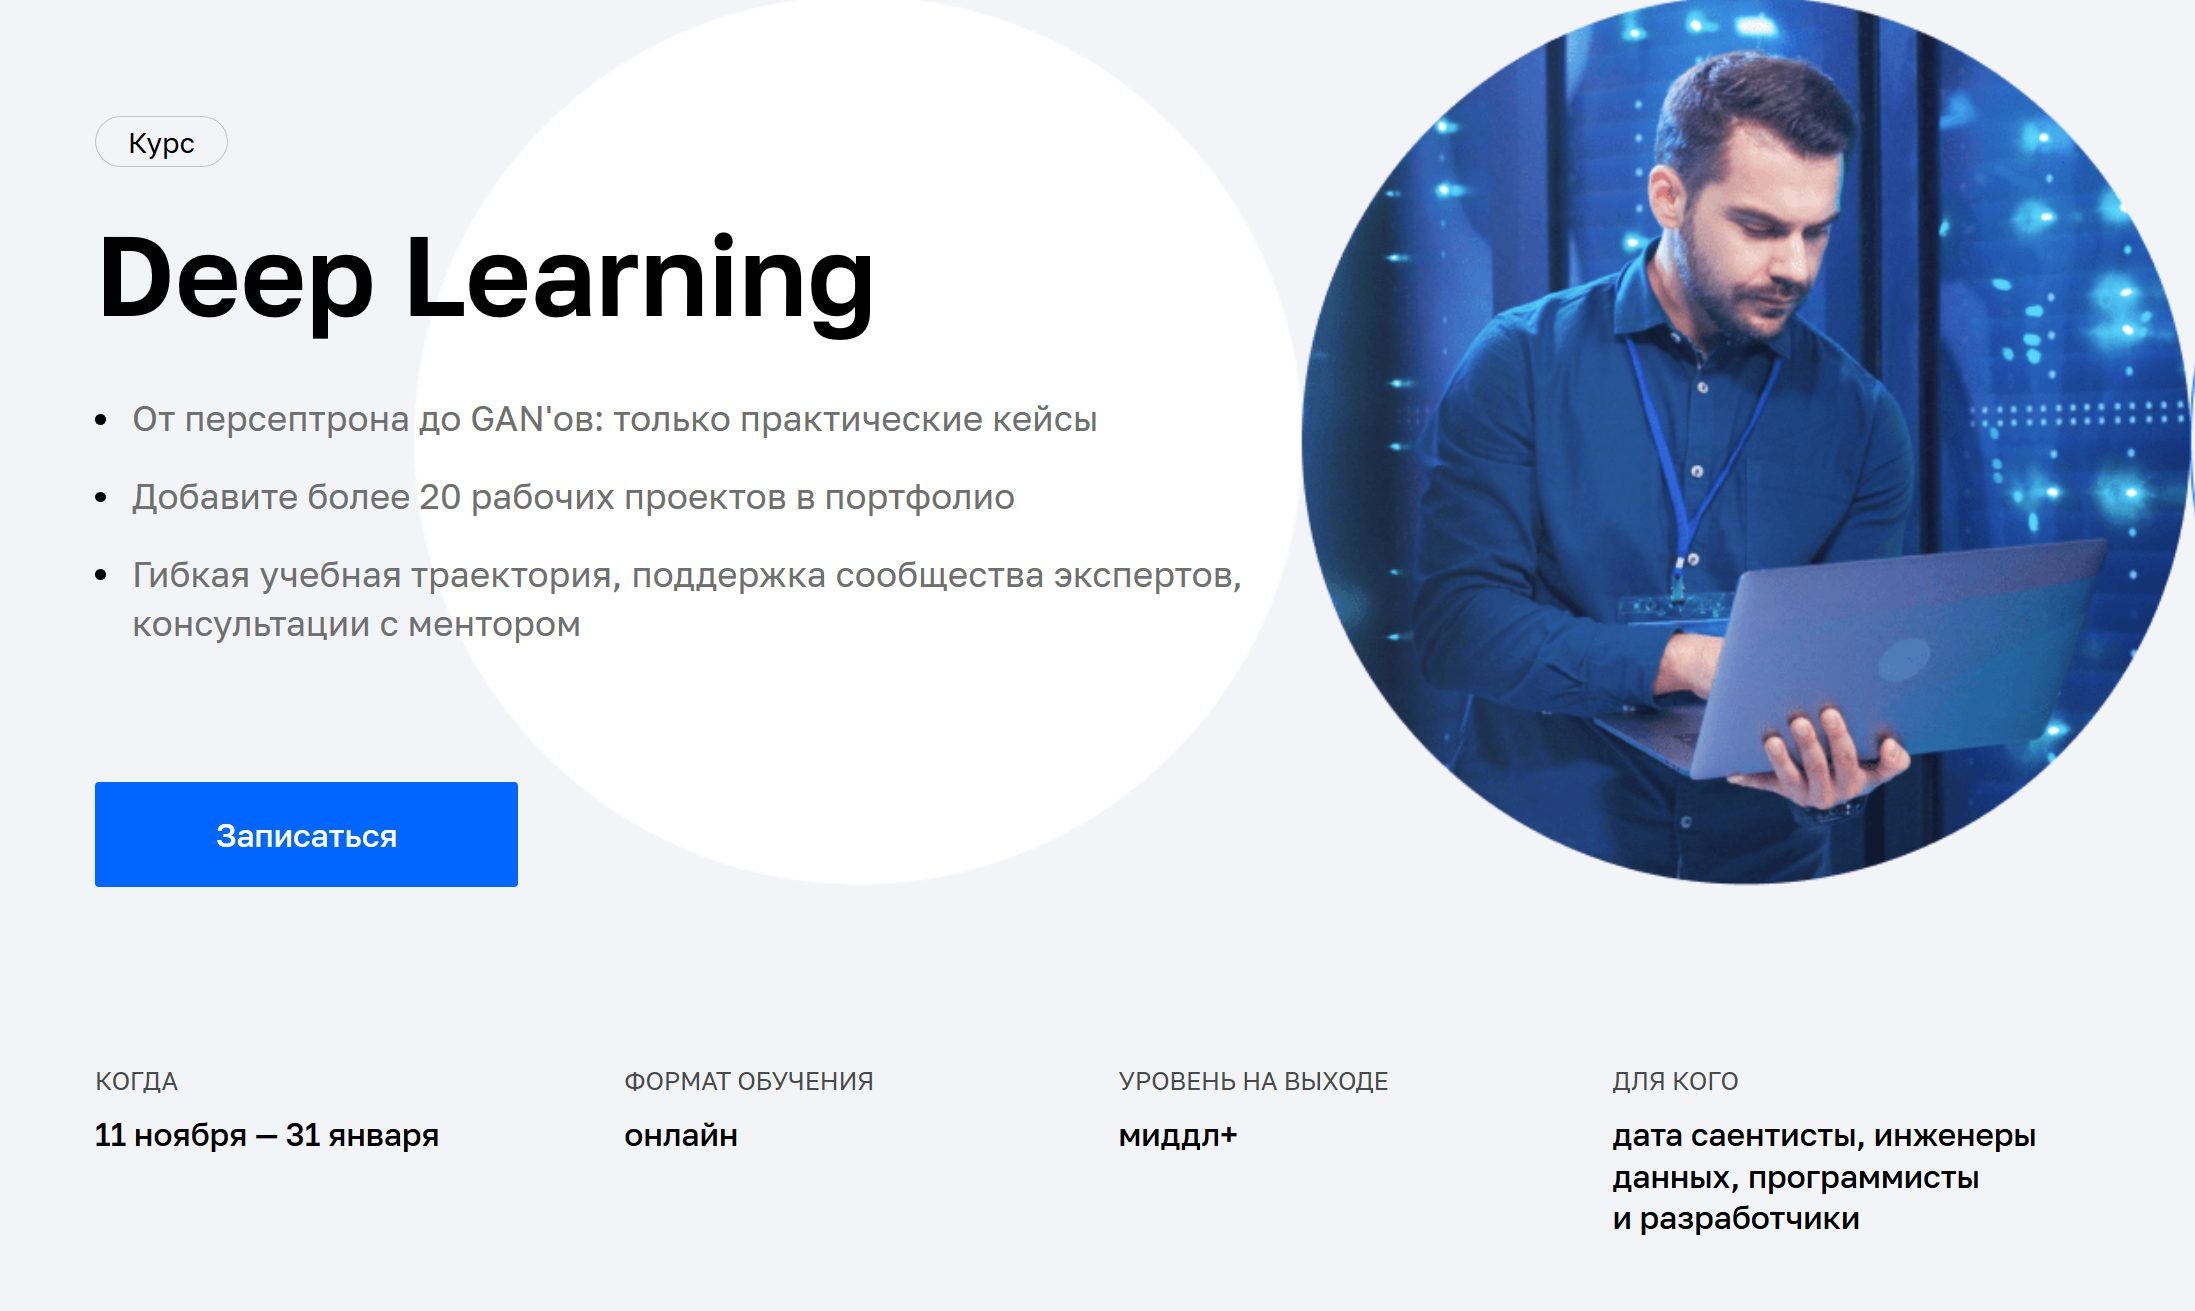 DEEP LEARNING от Netology